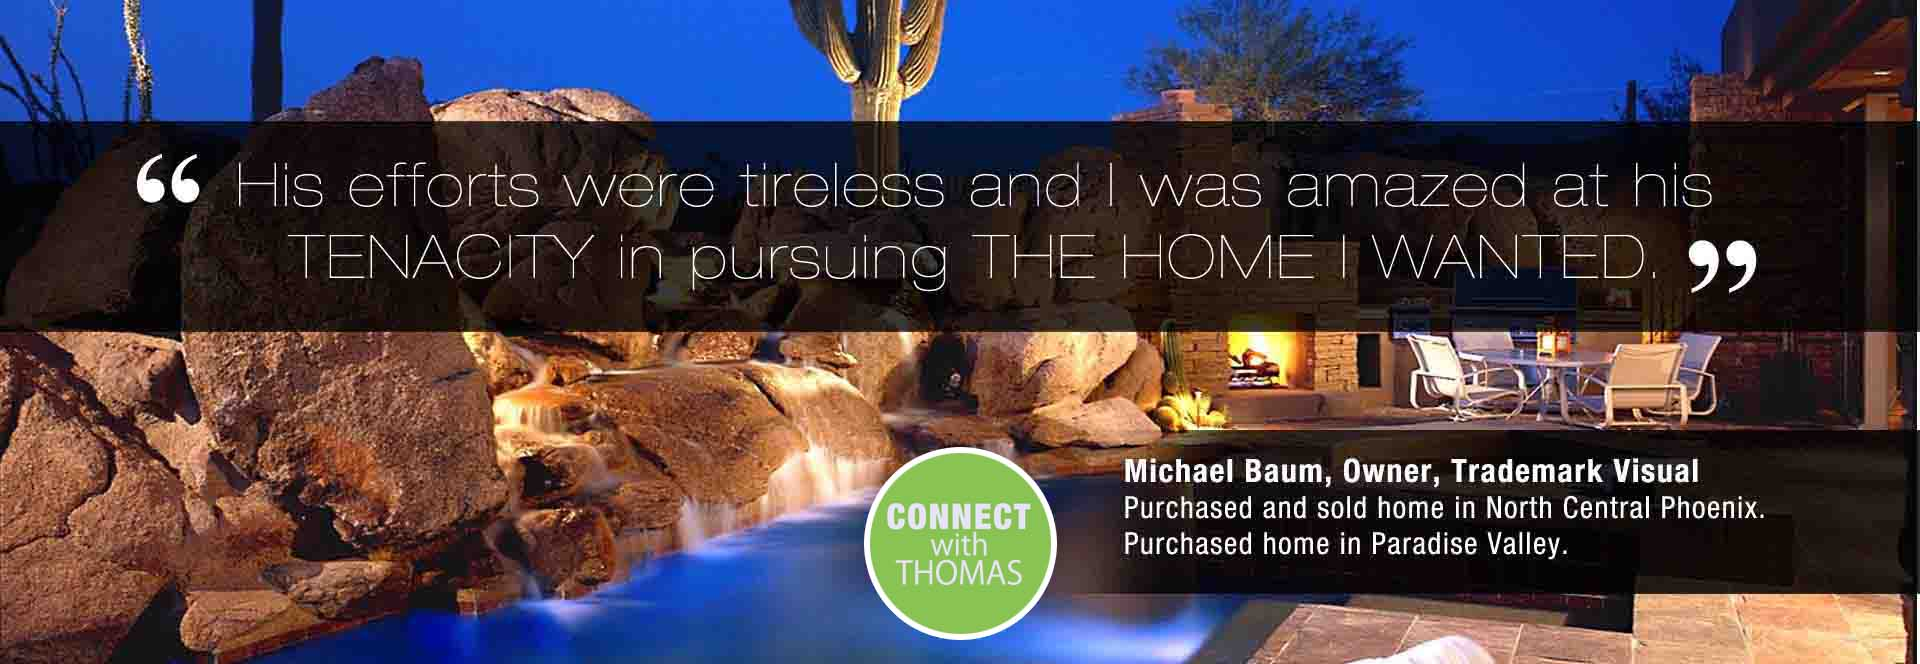 Home-For-Sale-North-Central-Phoenix-003